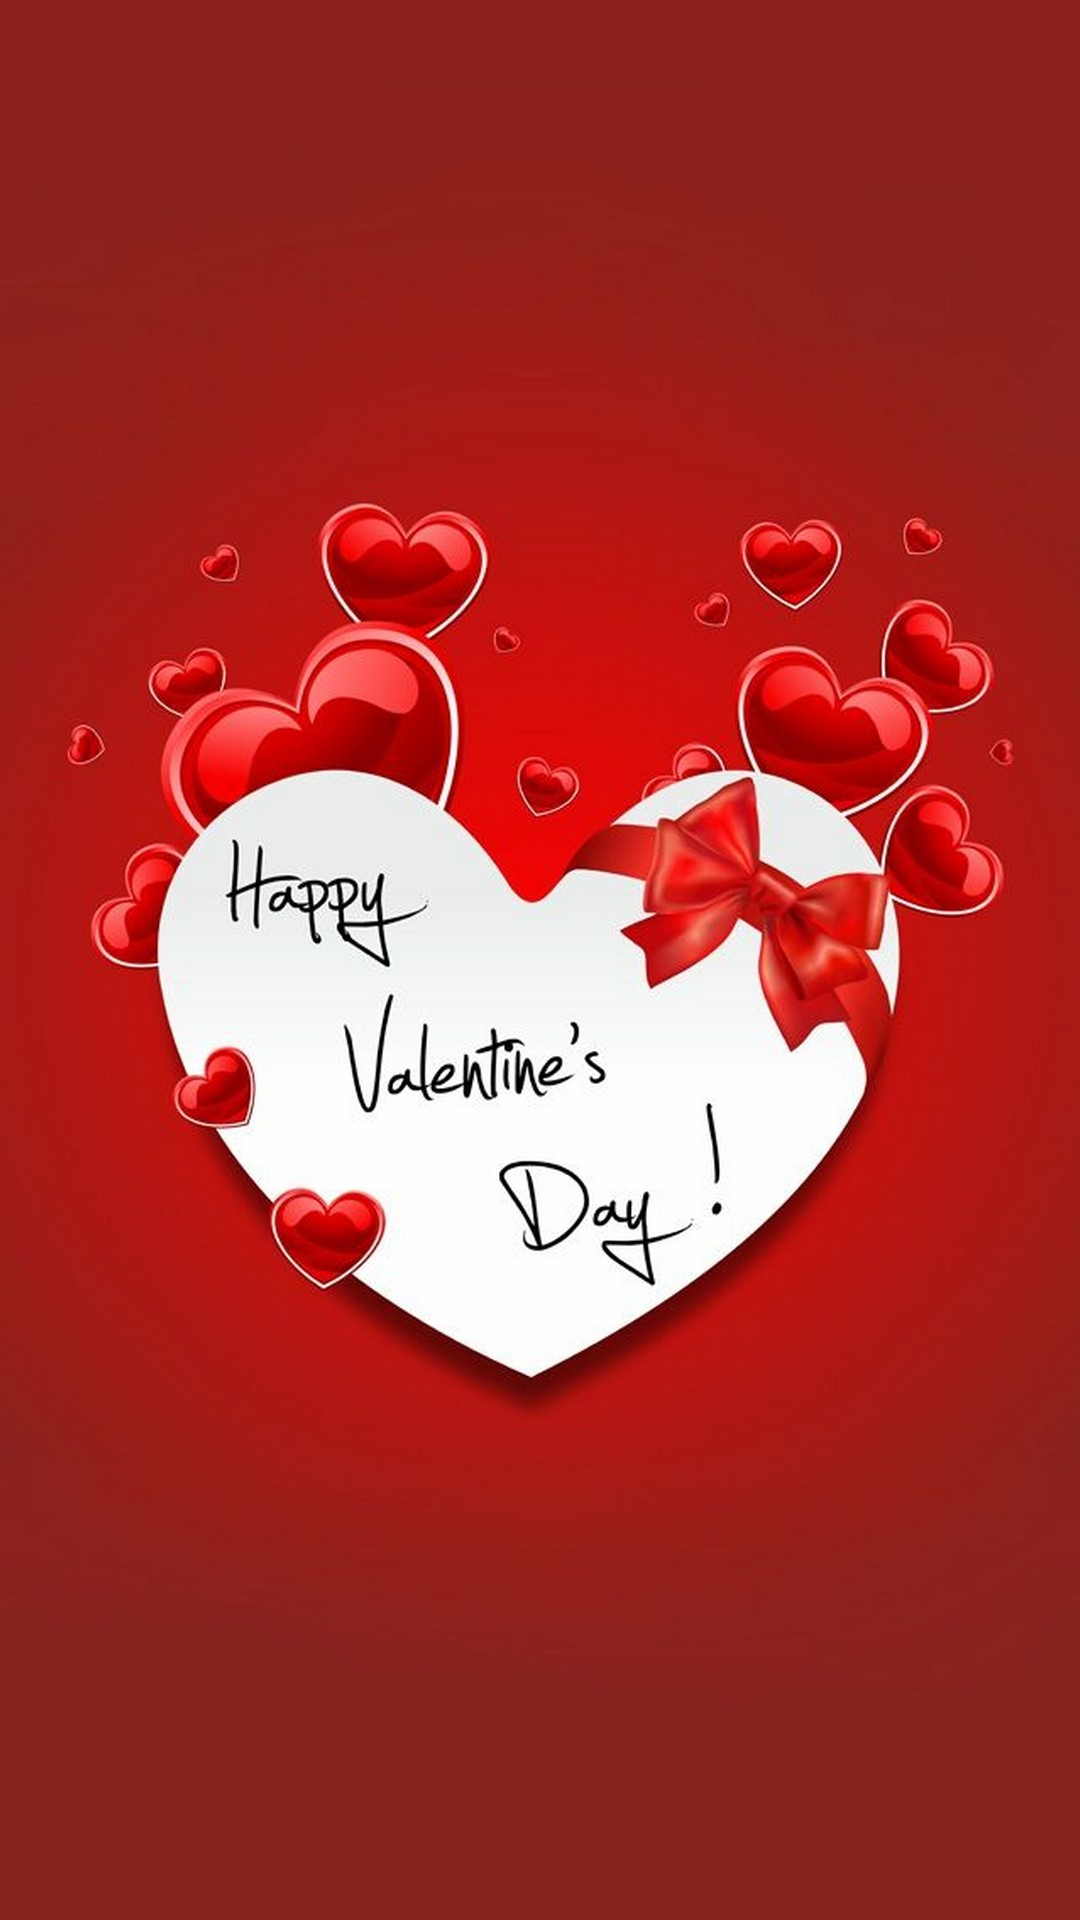 Wallpaper Happy Valentines Day Images Android   2021 Android 1080x1920